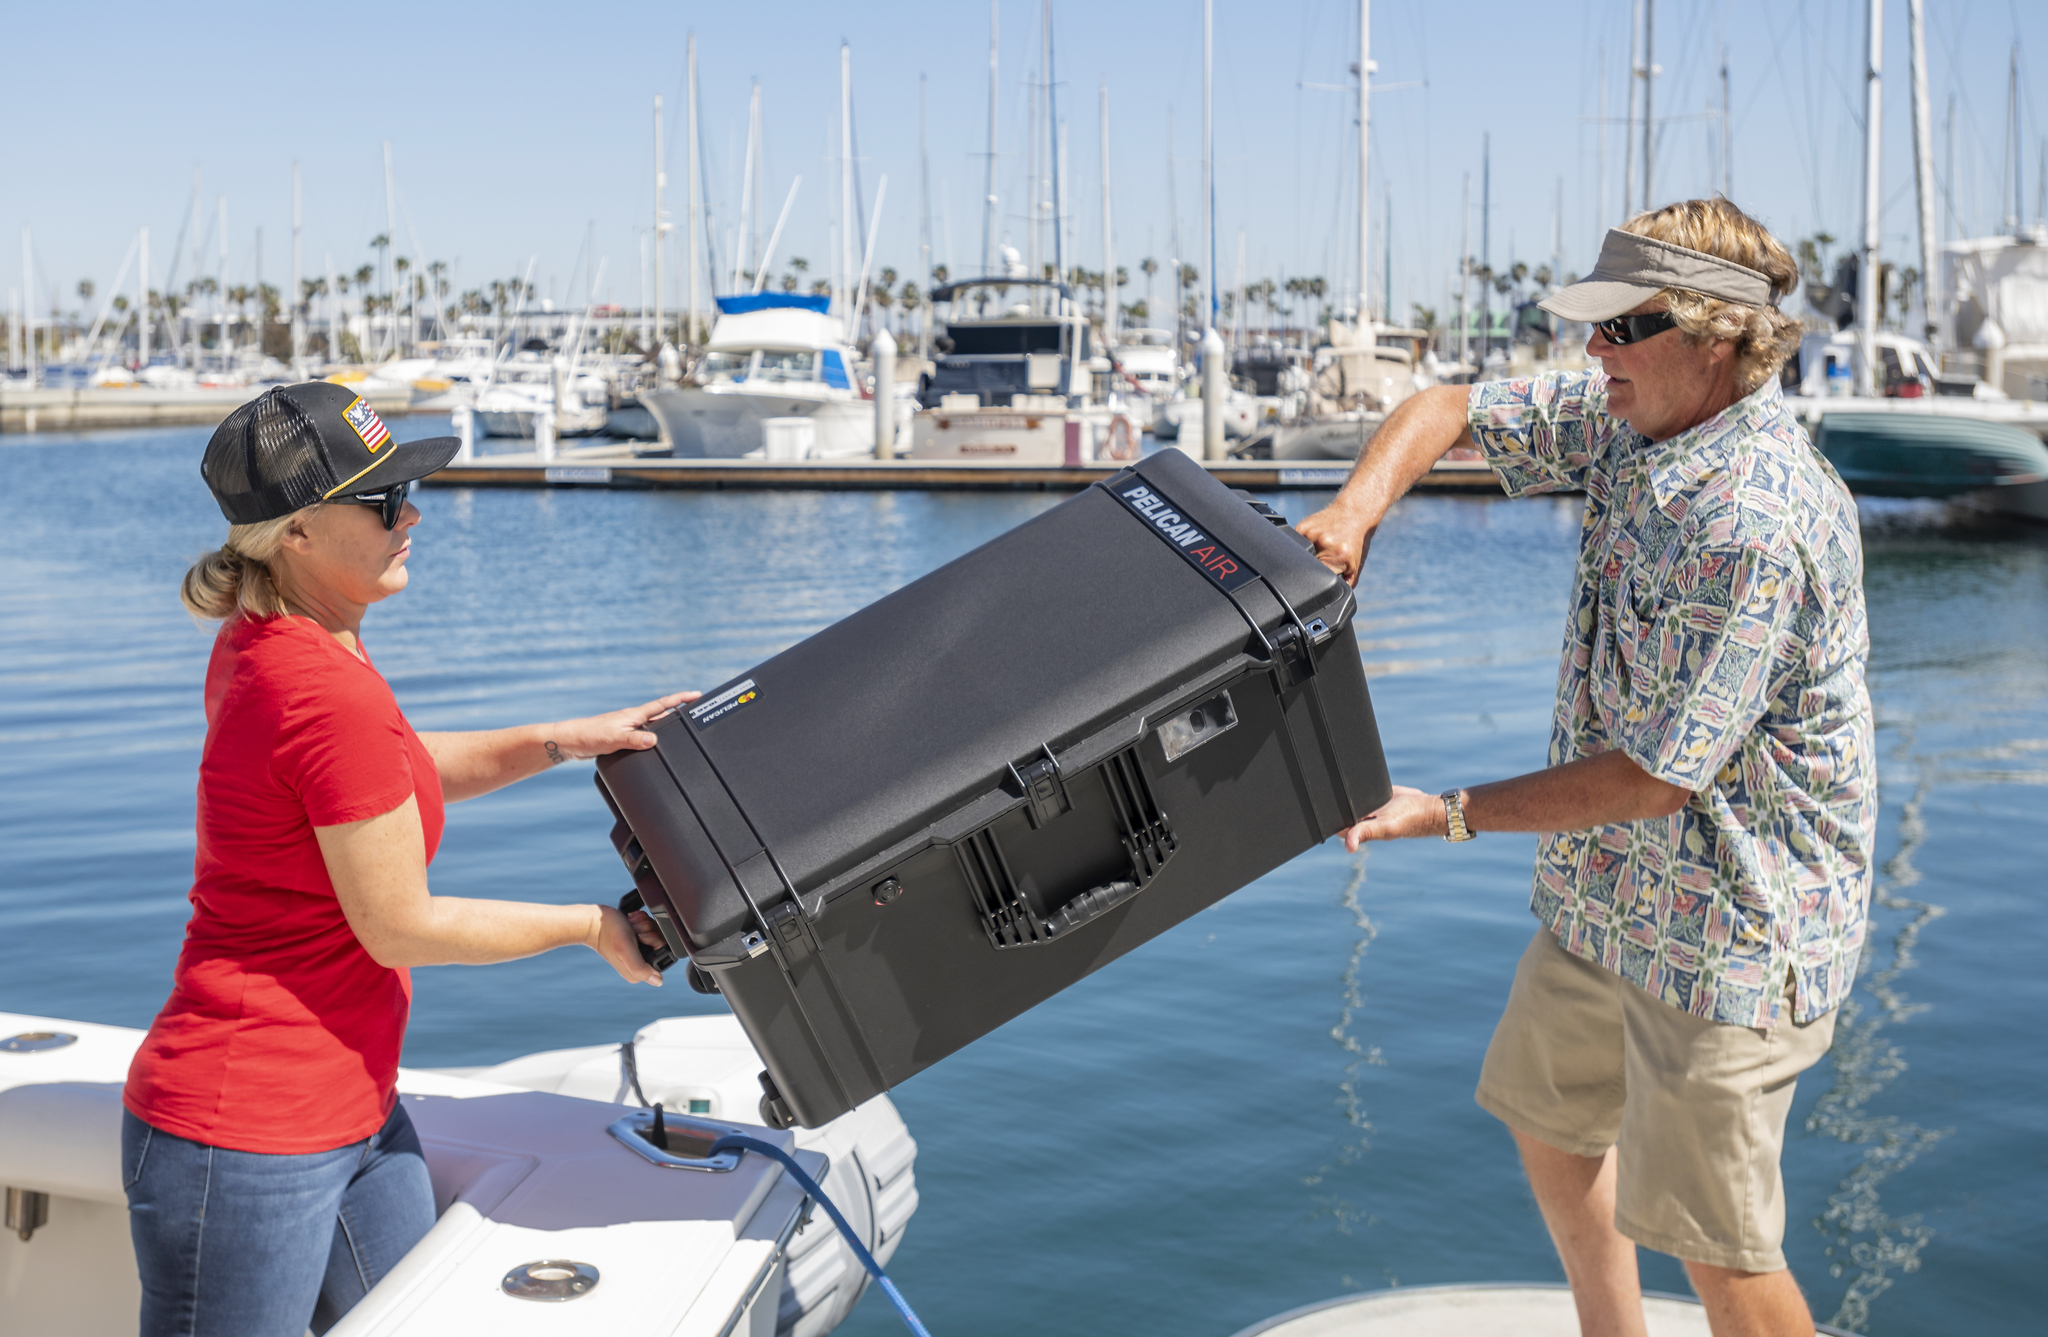 NEW Pelican Air 1646 Case Unveiled – Largest Pelican Air Case to Date!